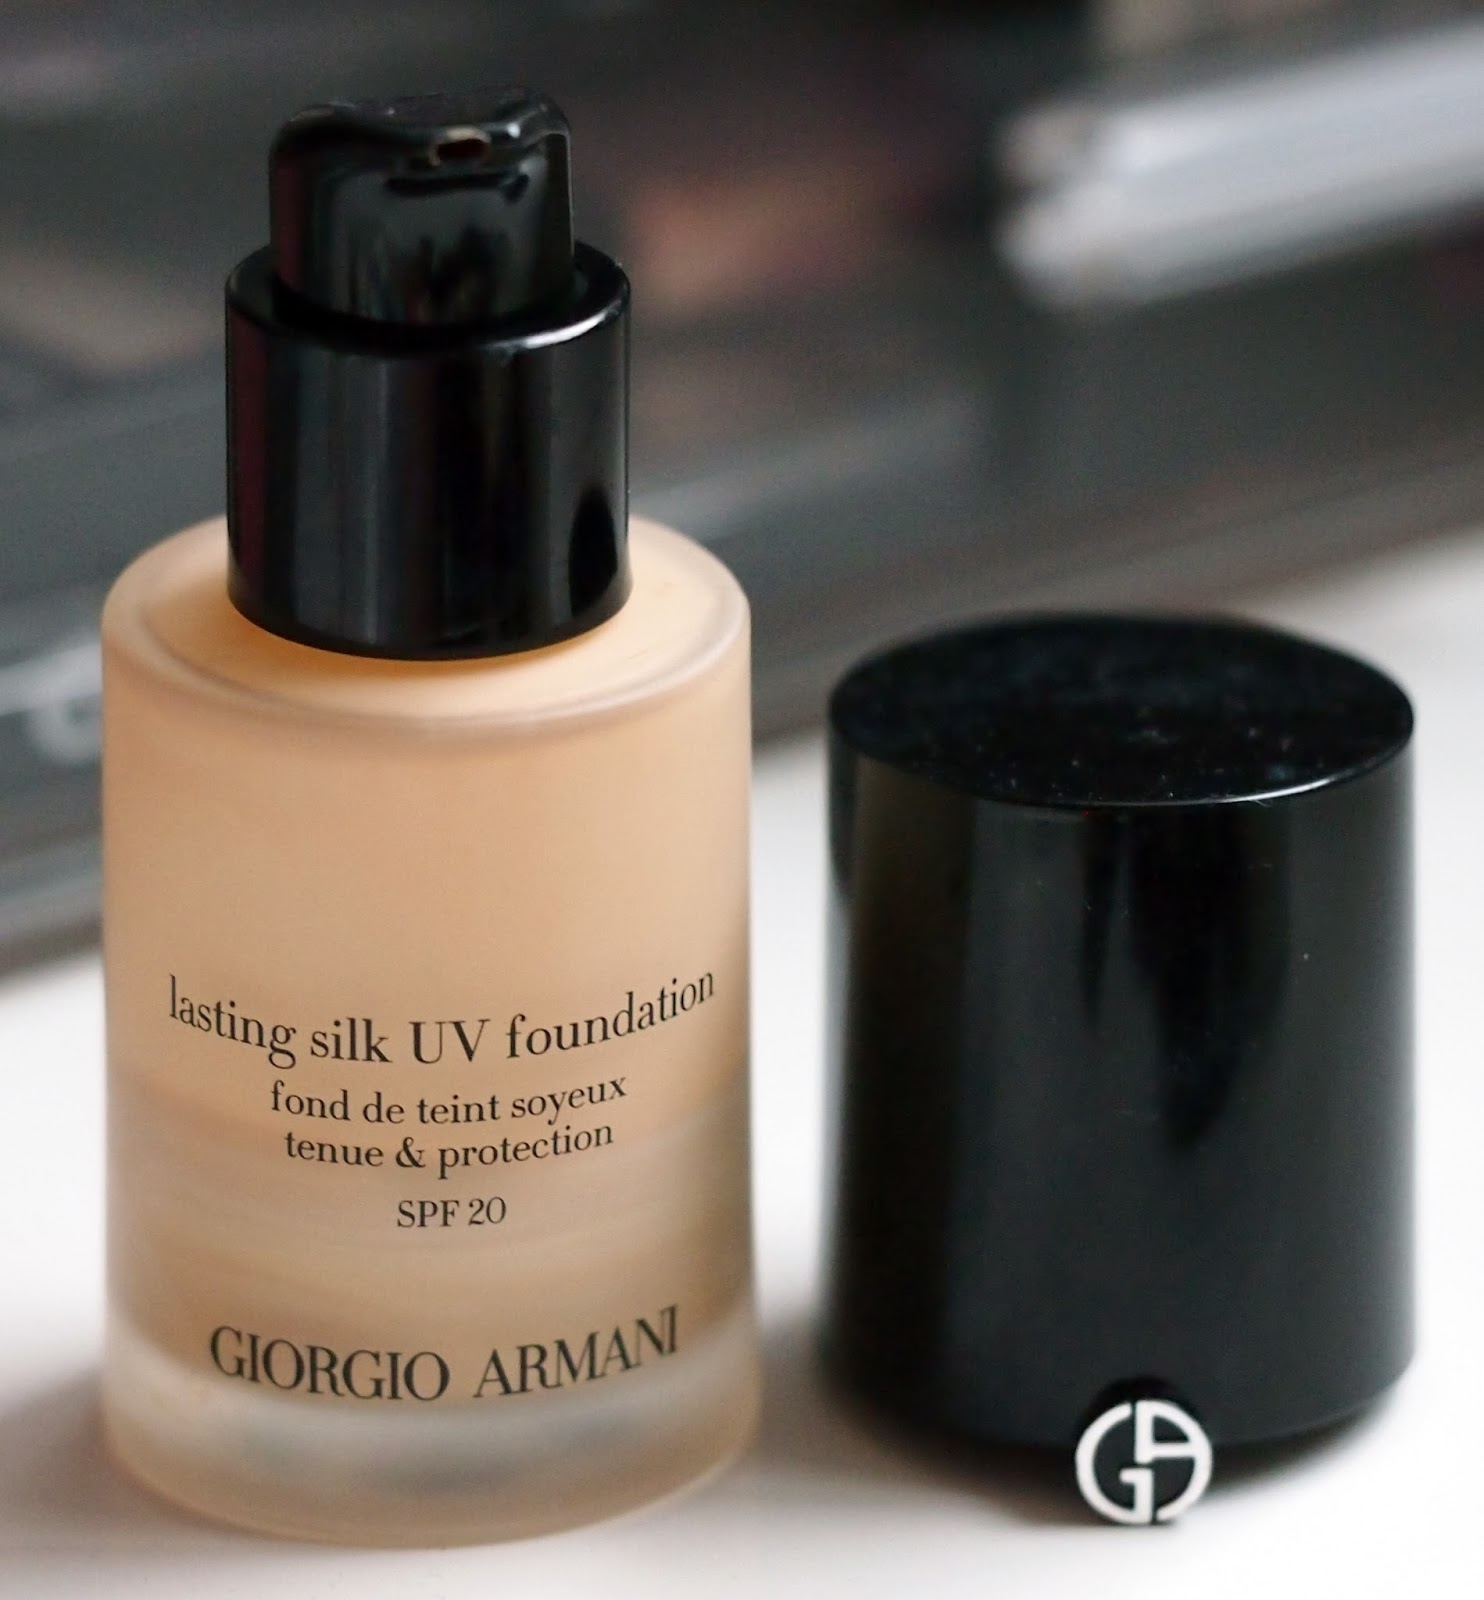 Lasting Silk 5.5 Lasting Silk uv Foundation